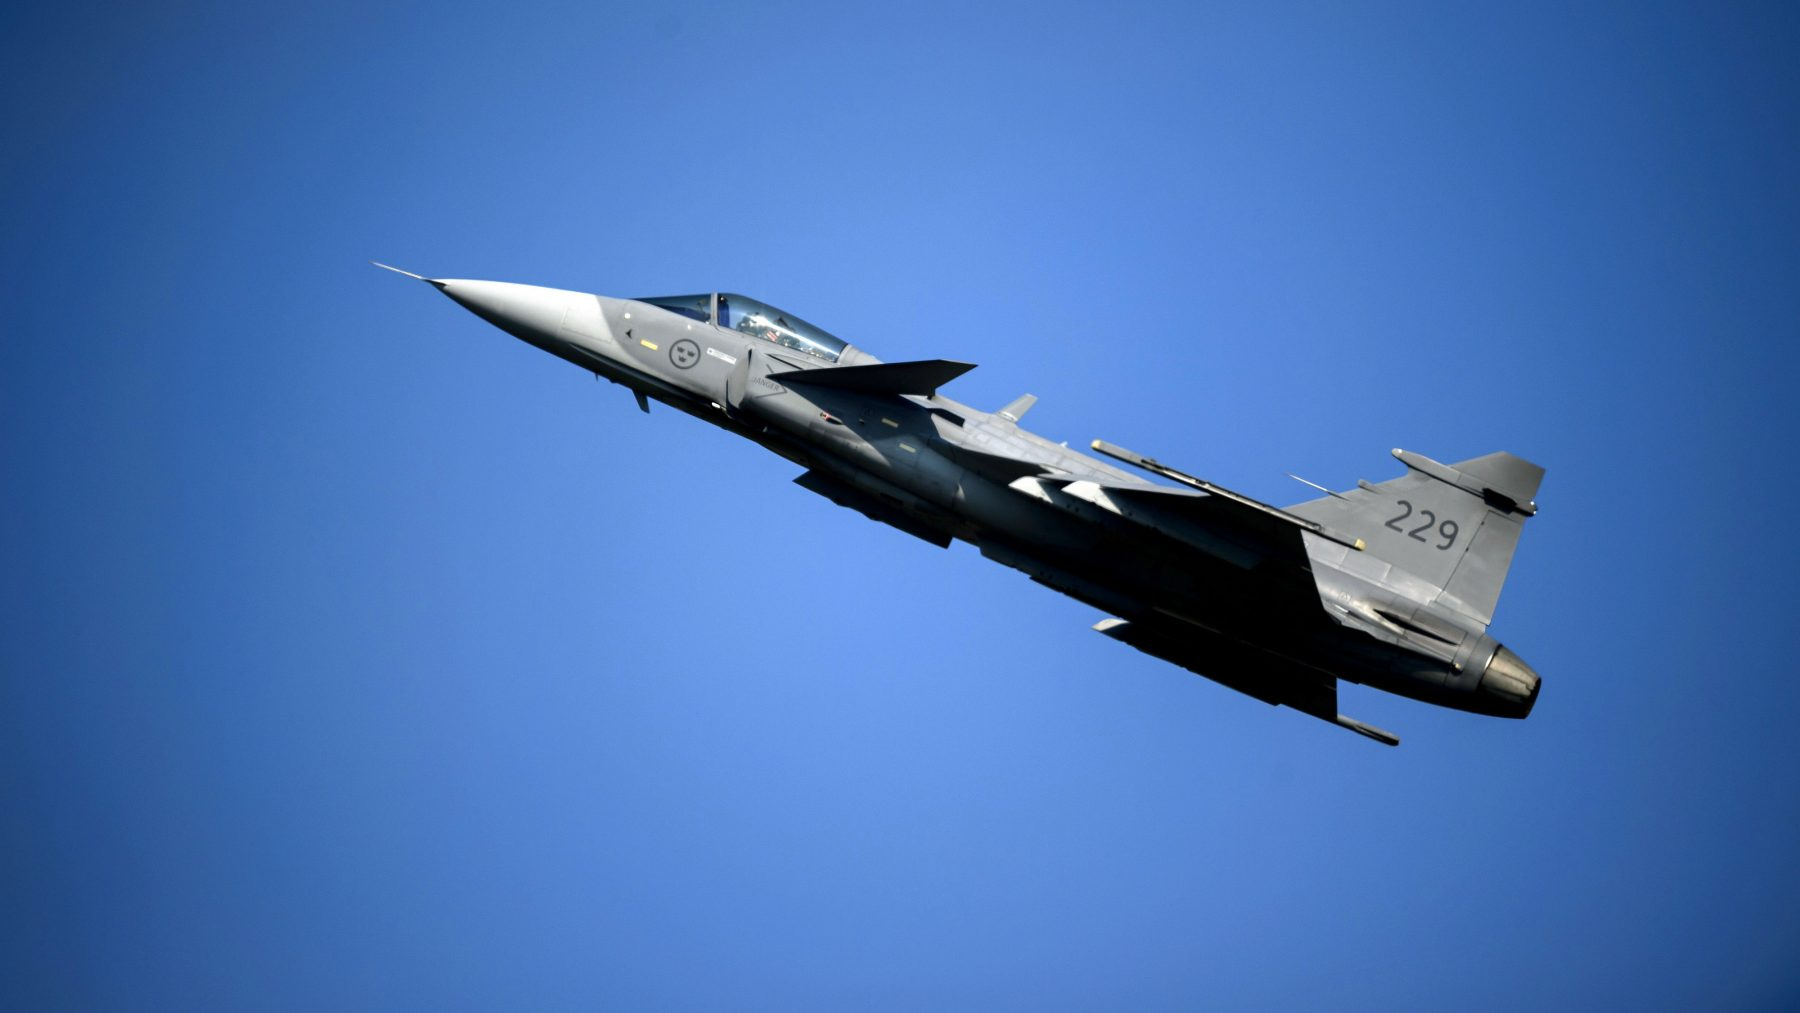 Fighter jets flying low over Arctic Finland for military drill in